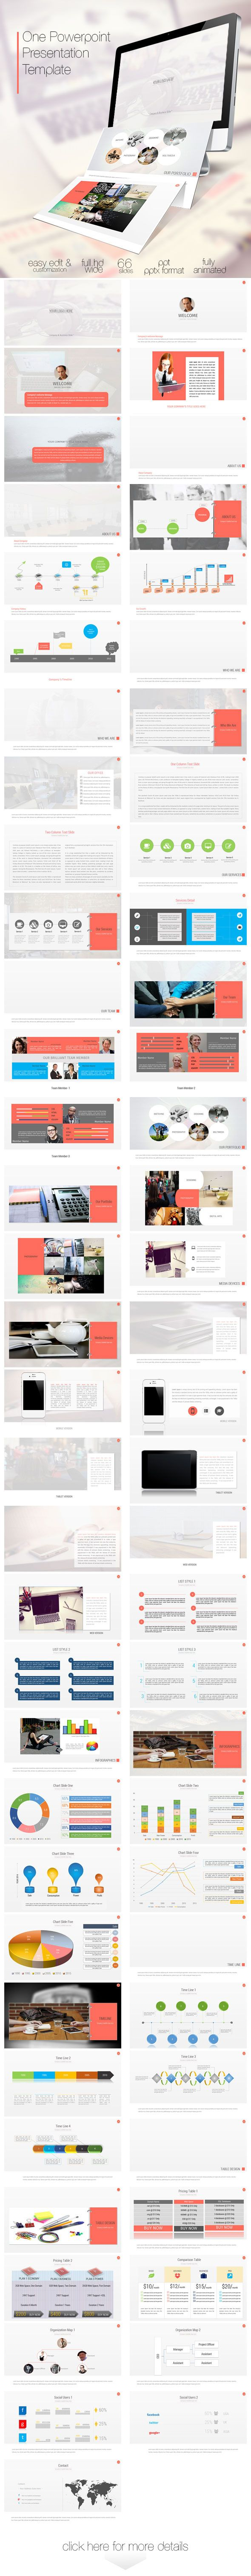 One Power Point Presentation Template (Powerpoint Templates) preview image